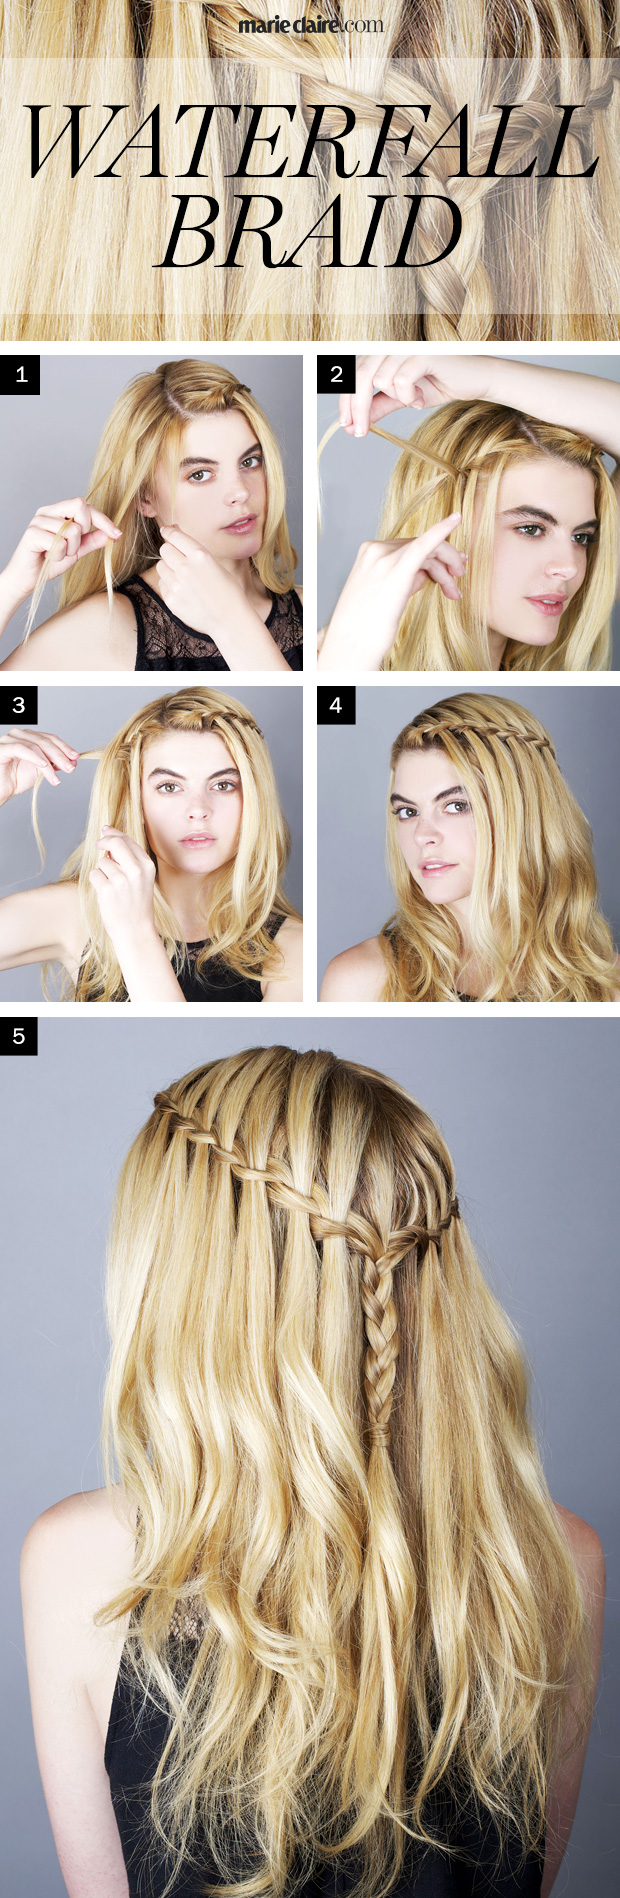 54832933b7f1f_-_mcx-waterfall-braid-how-to.jpg